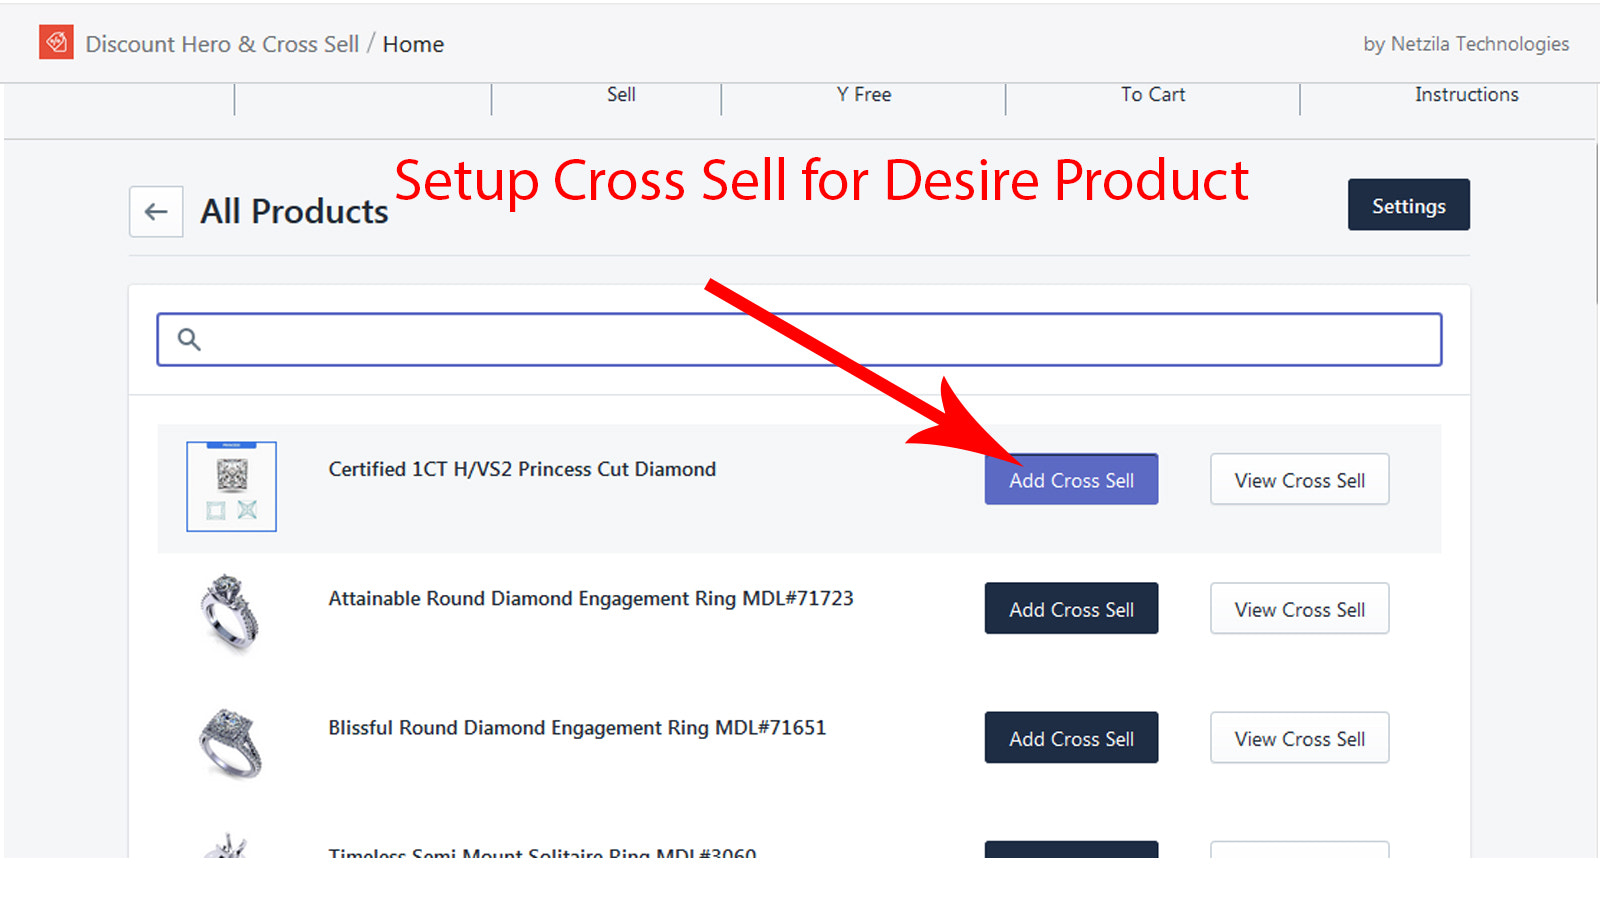 Cross sell products